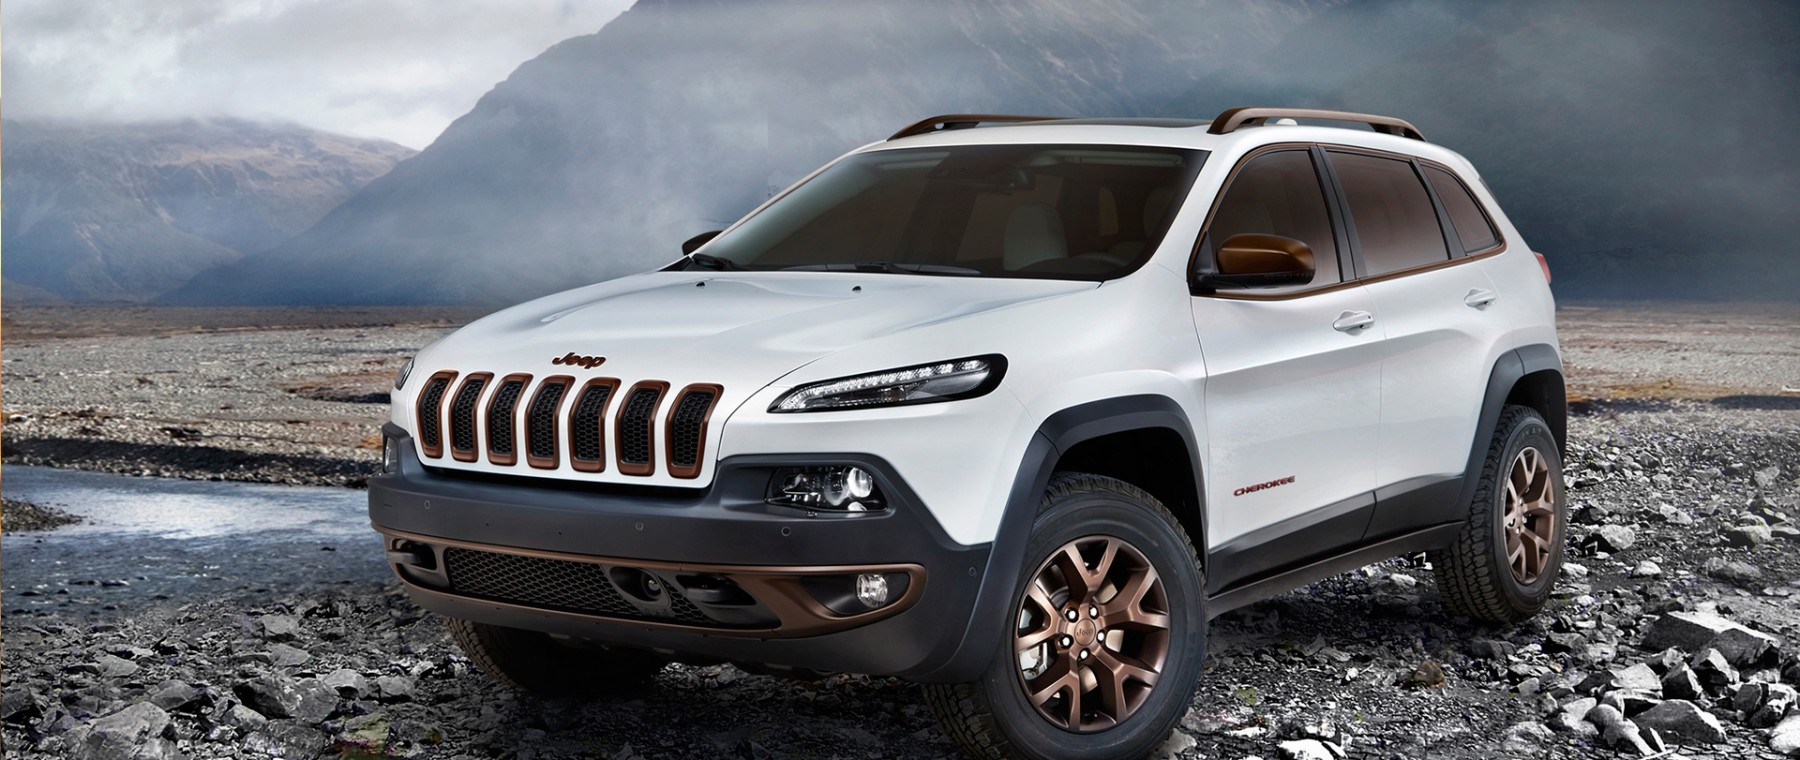 new 2015 jeep cherokee deals and lease offers. Black Bedroom Furniture Sets. Home Design Ideas